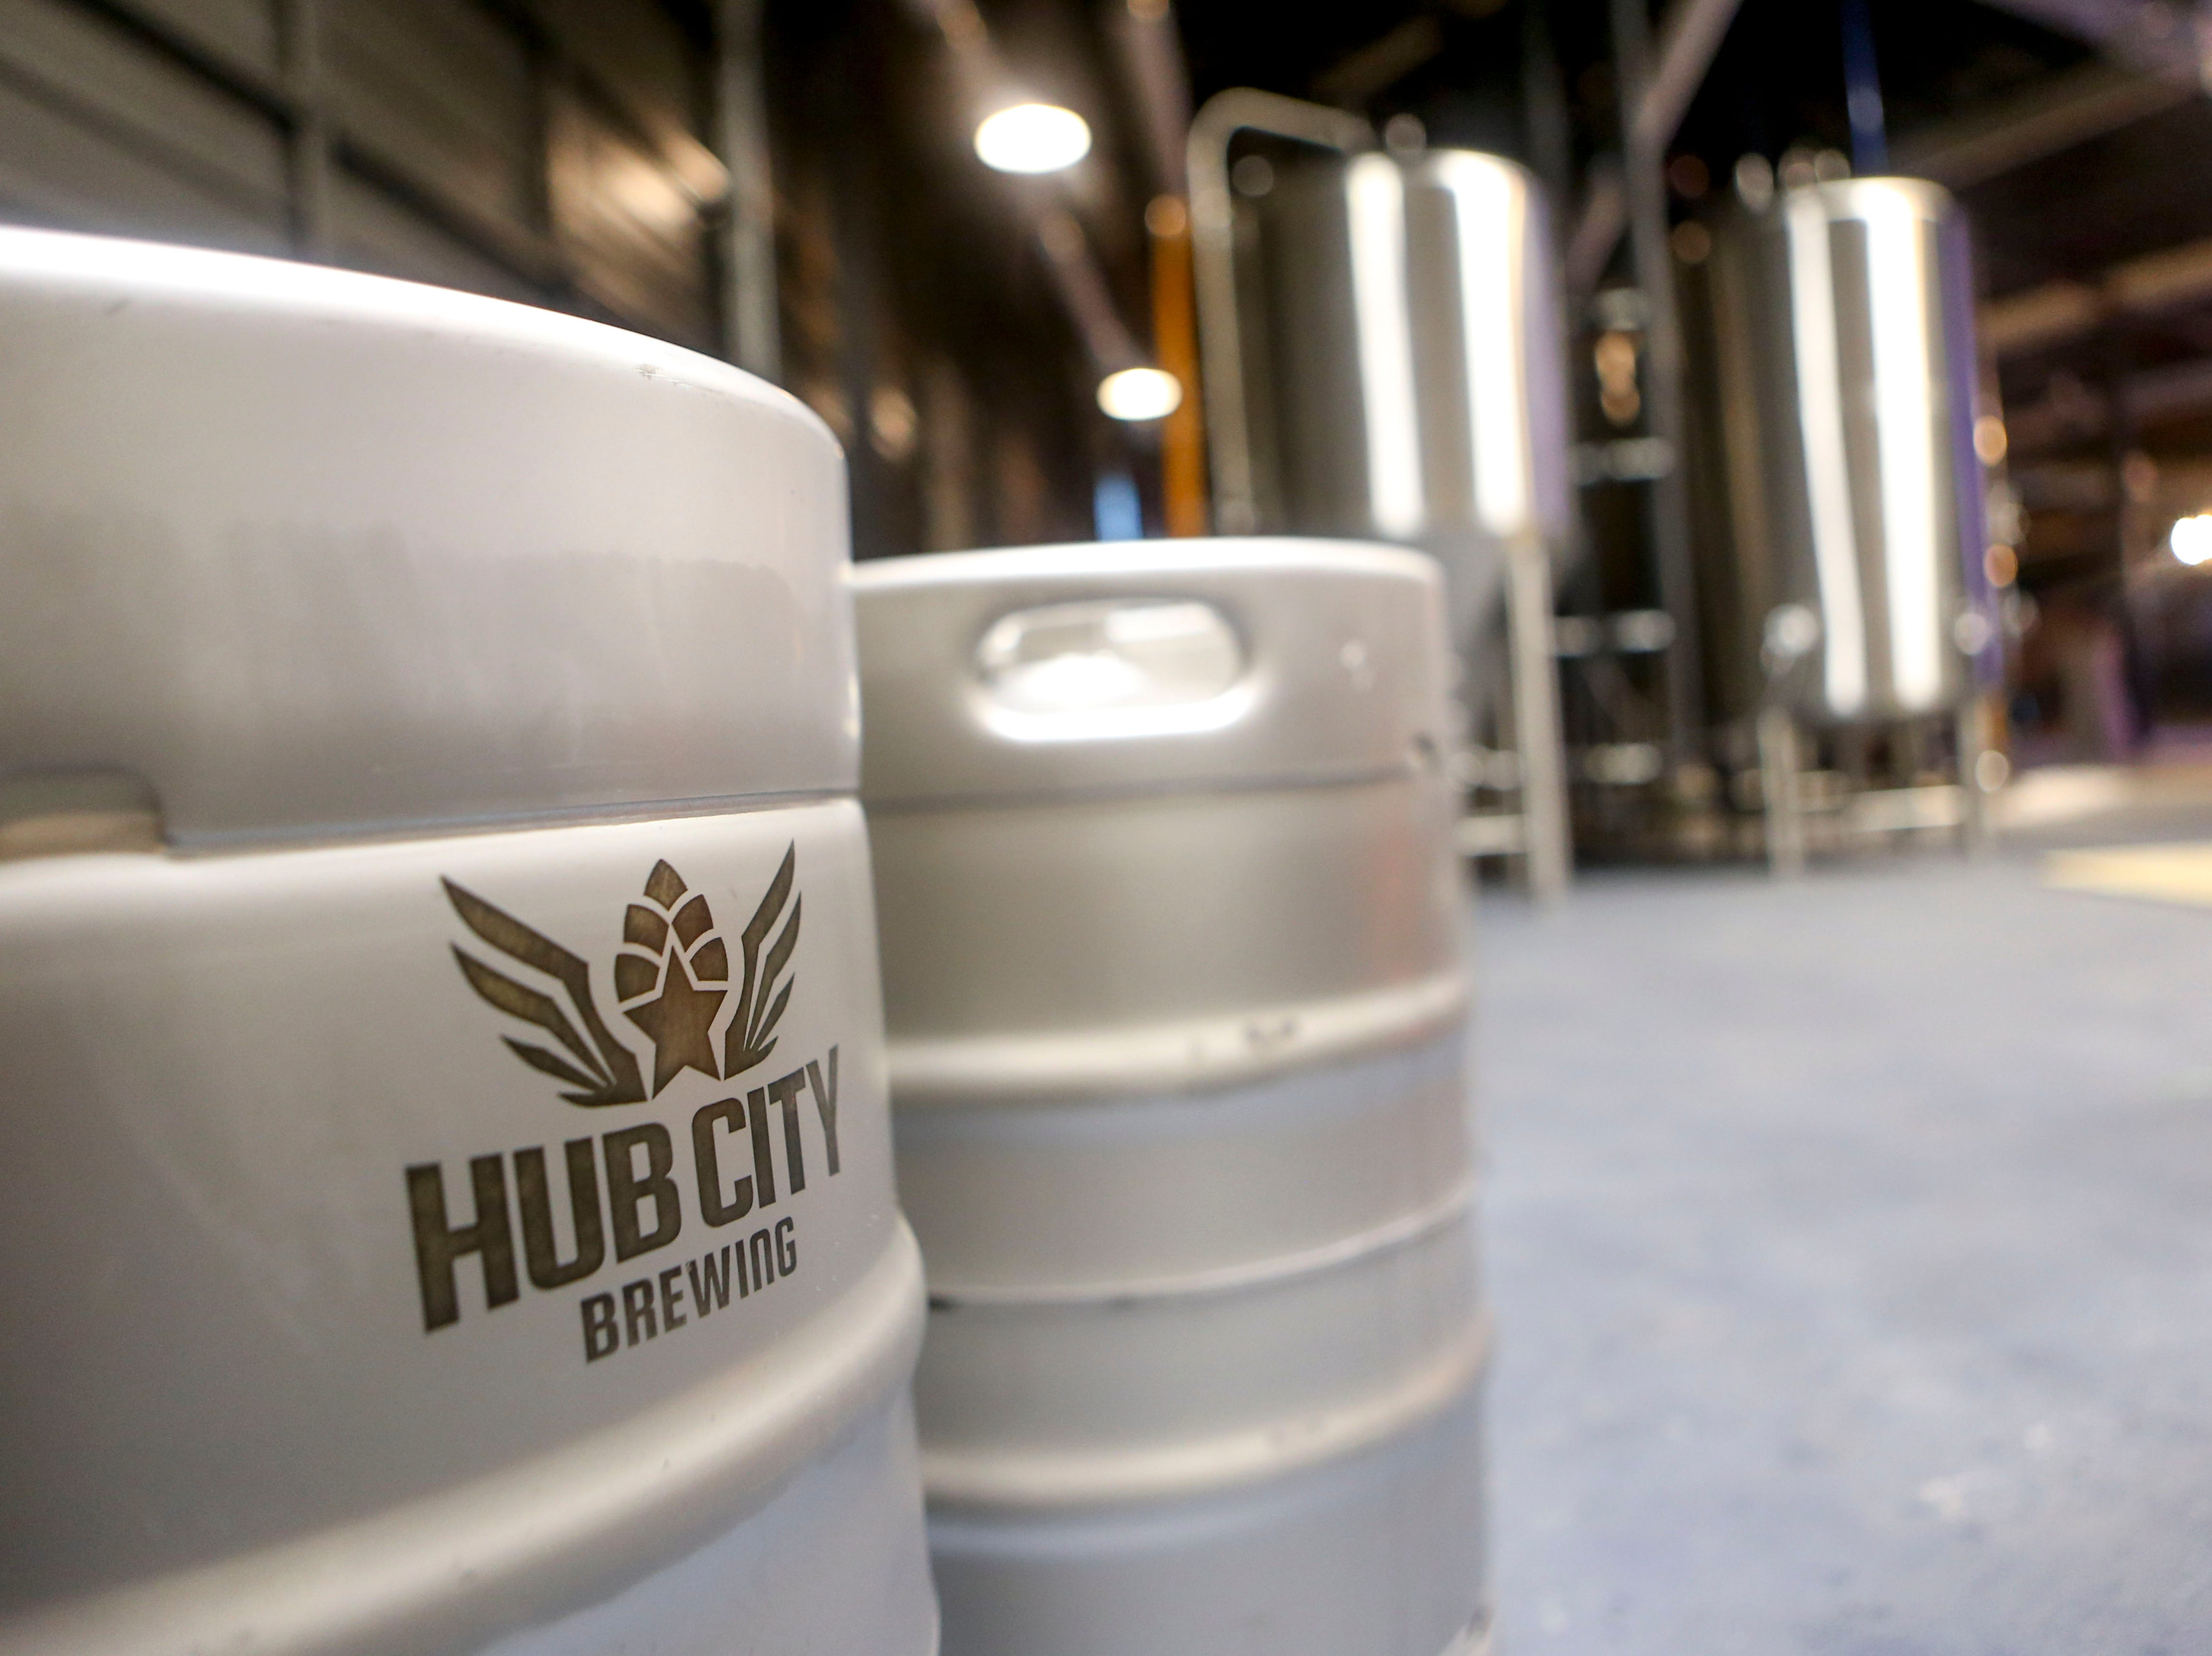 A keg with the brewery's logo can be seen in the brewing area in the back at Hub City Brewing in Jackson, Tenn., on Wednesday, Feb. 6, 2019.